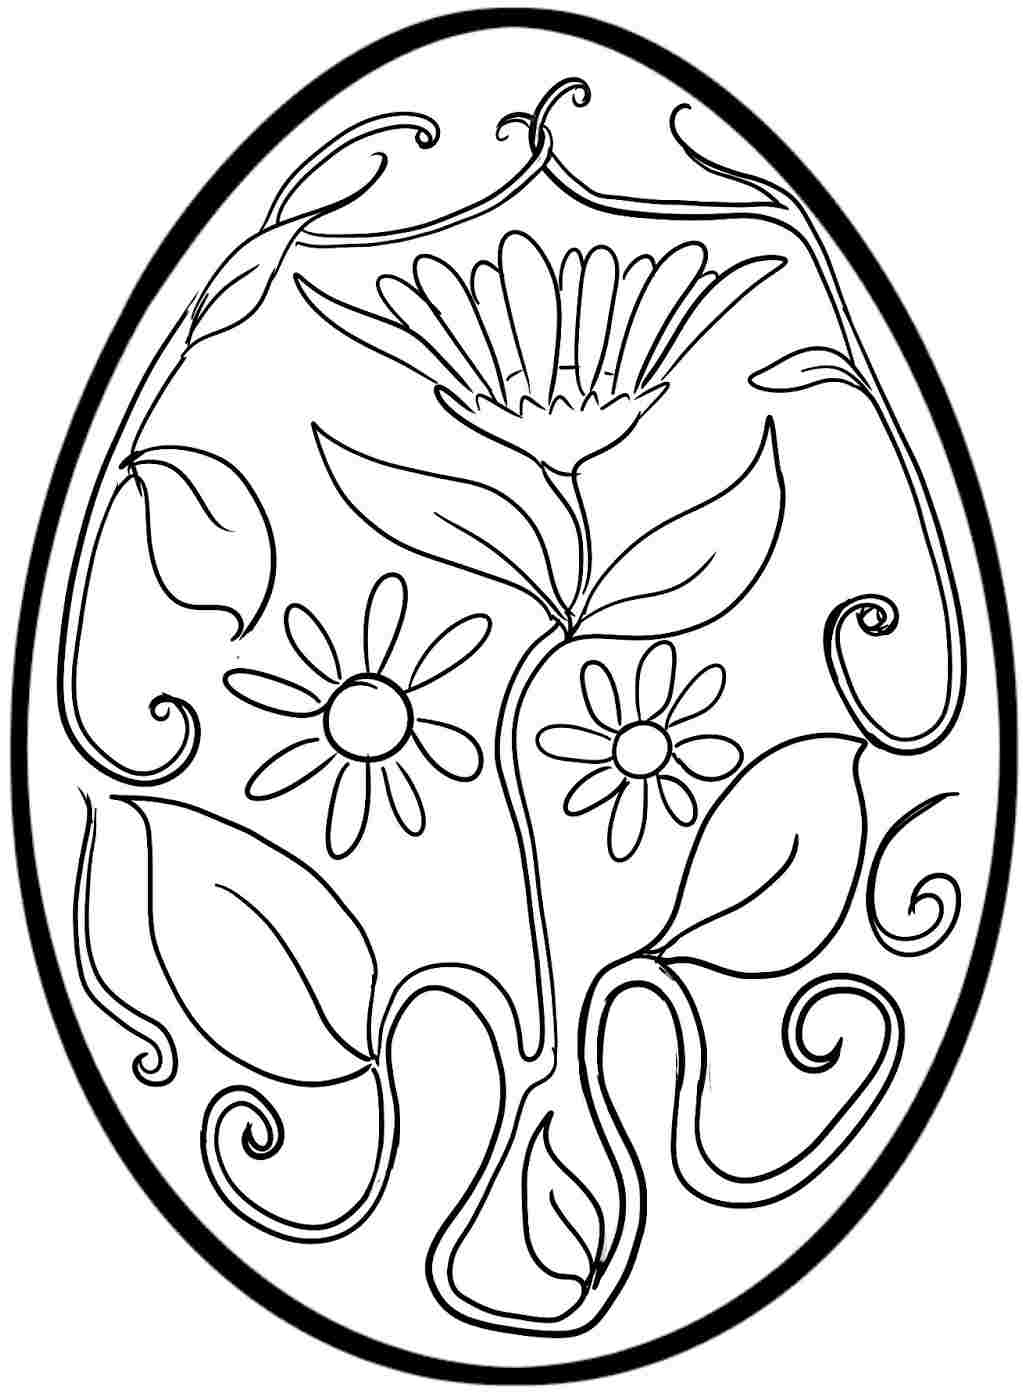 easter eggs coloring page free printable easter egg coloring pages coloring home eggs page coloring easter